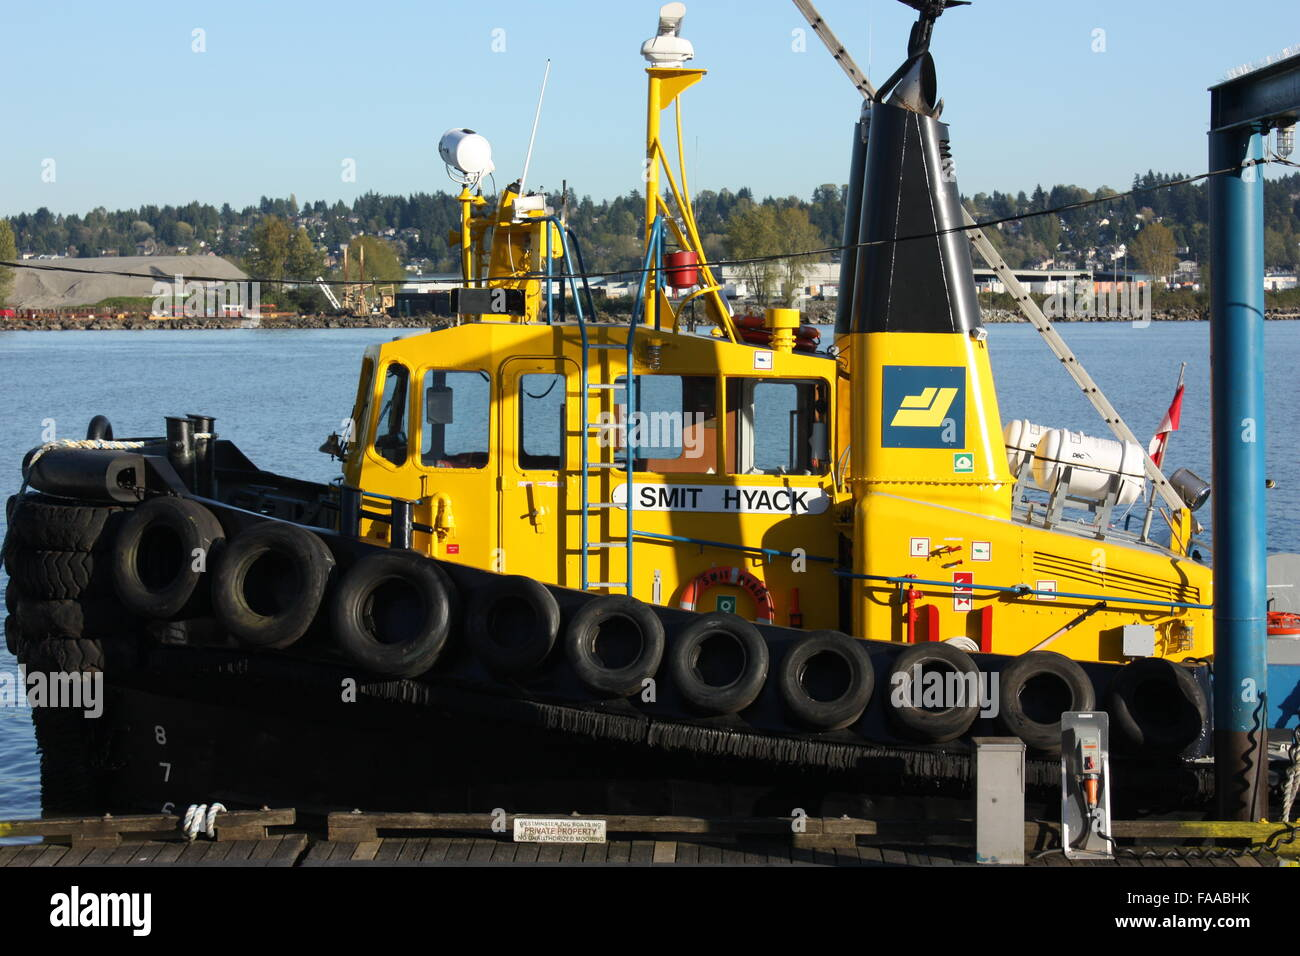 Tugboat on the Fraser River in New Westminster, British Columbia, Canada - Stock Image